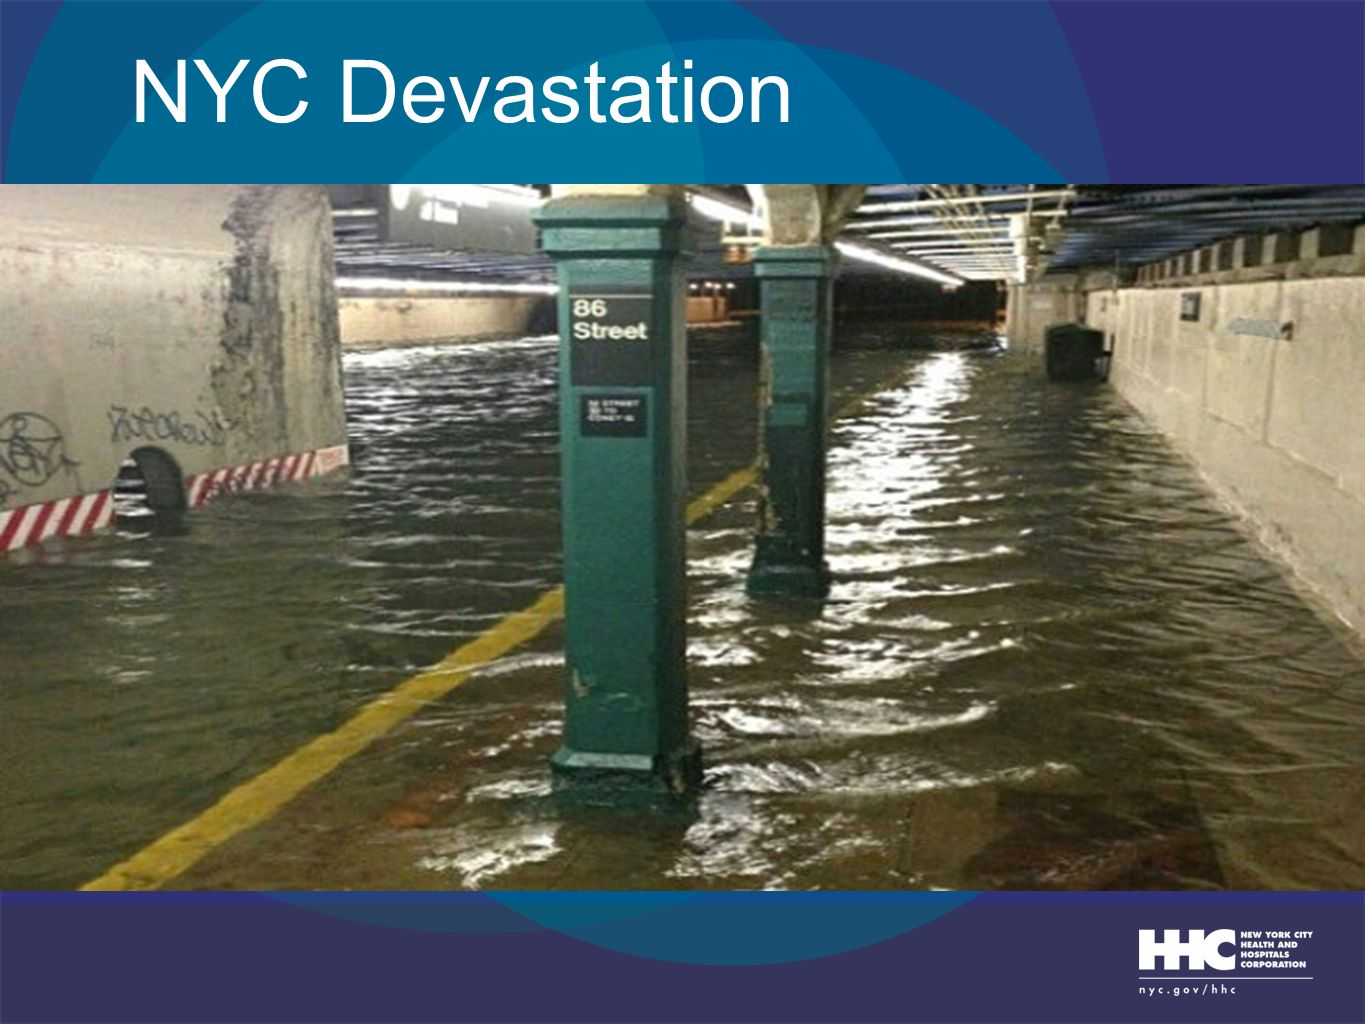 NYC Devastation